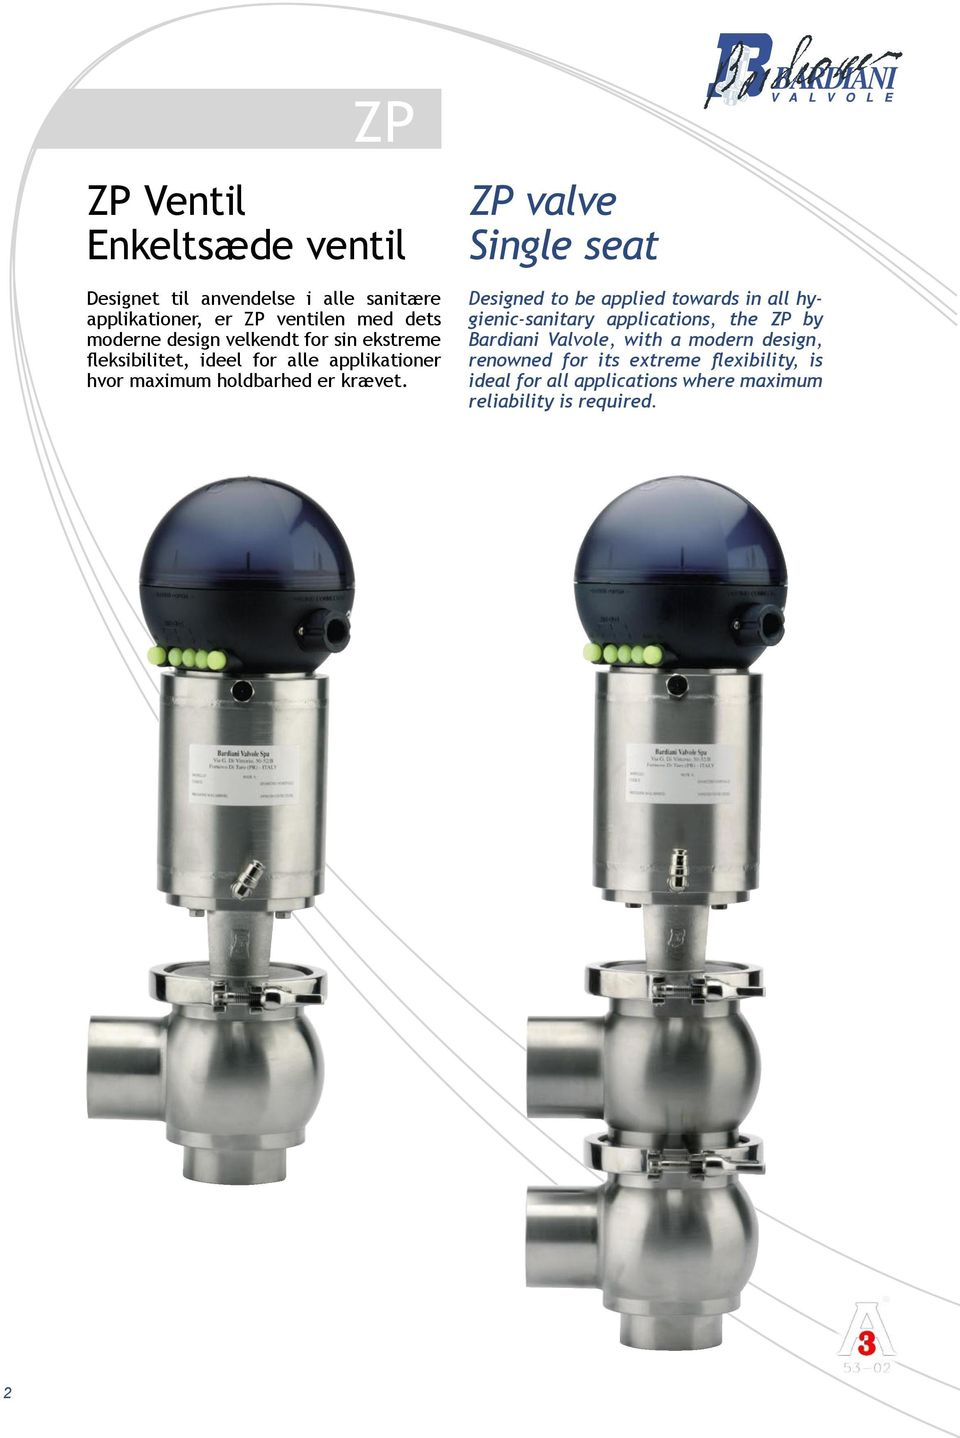 ZP valve Single seat esigned to be applied towards in all hygienic-sanitary applications, the ZP by Bardiani Valvole,